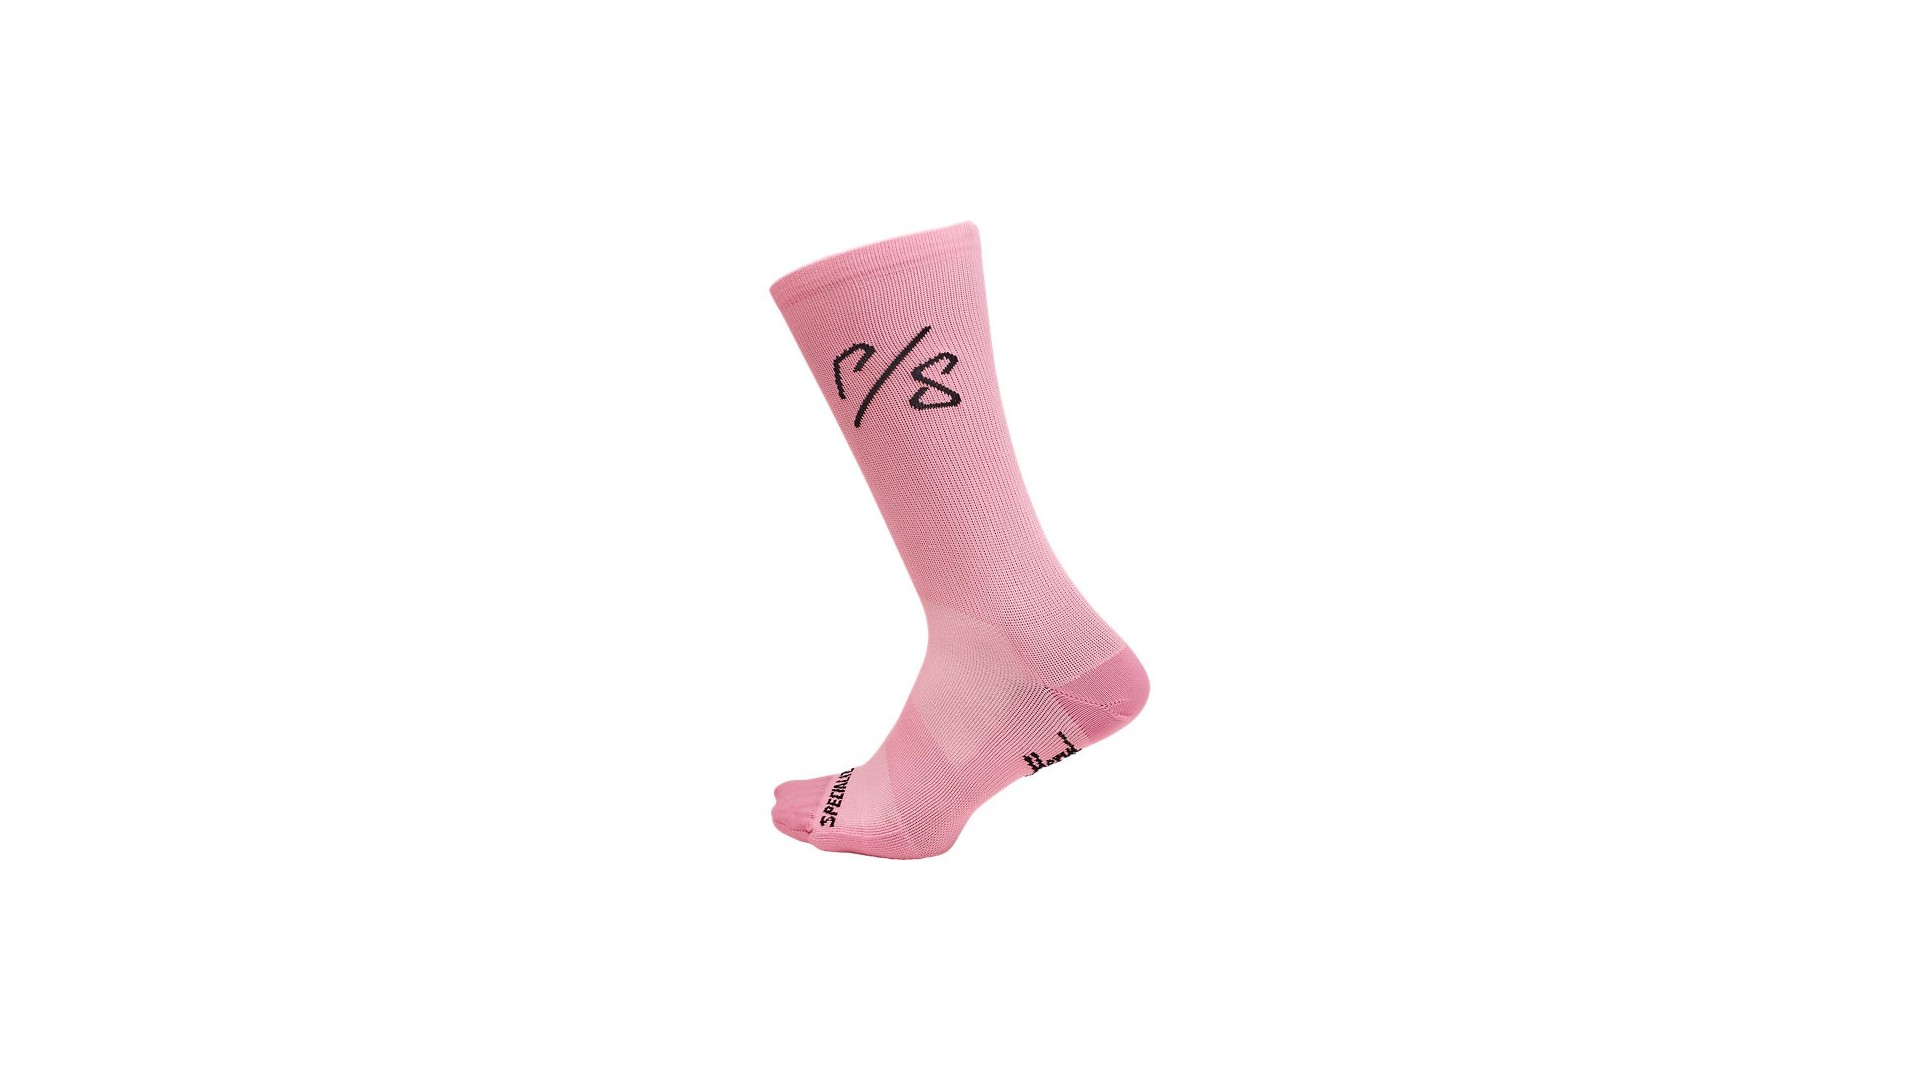 Road Tall Calcetines Invierno Sagan Collections Specialized Rosa Overexposed 1 IBKBike.es